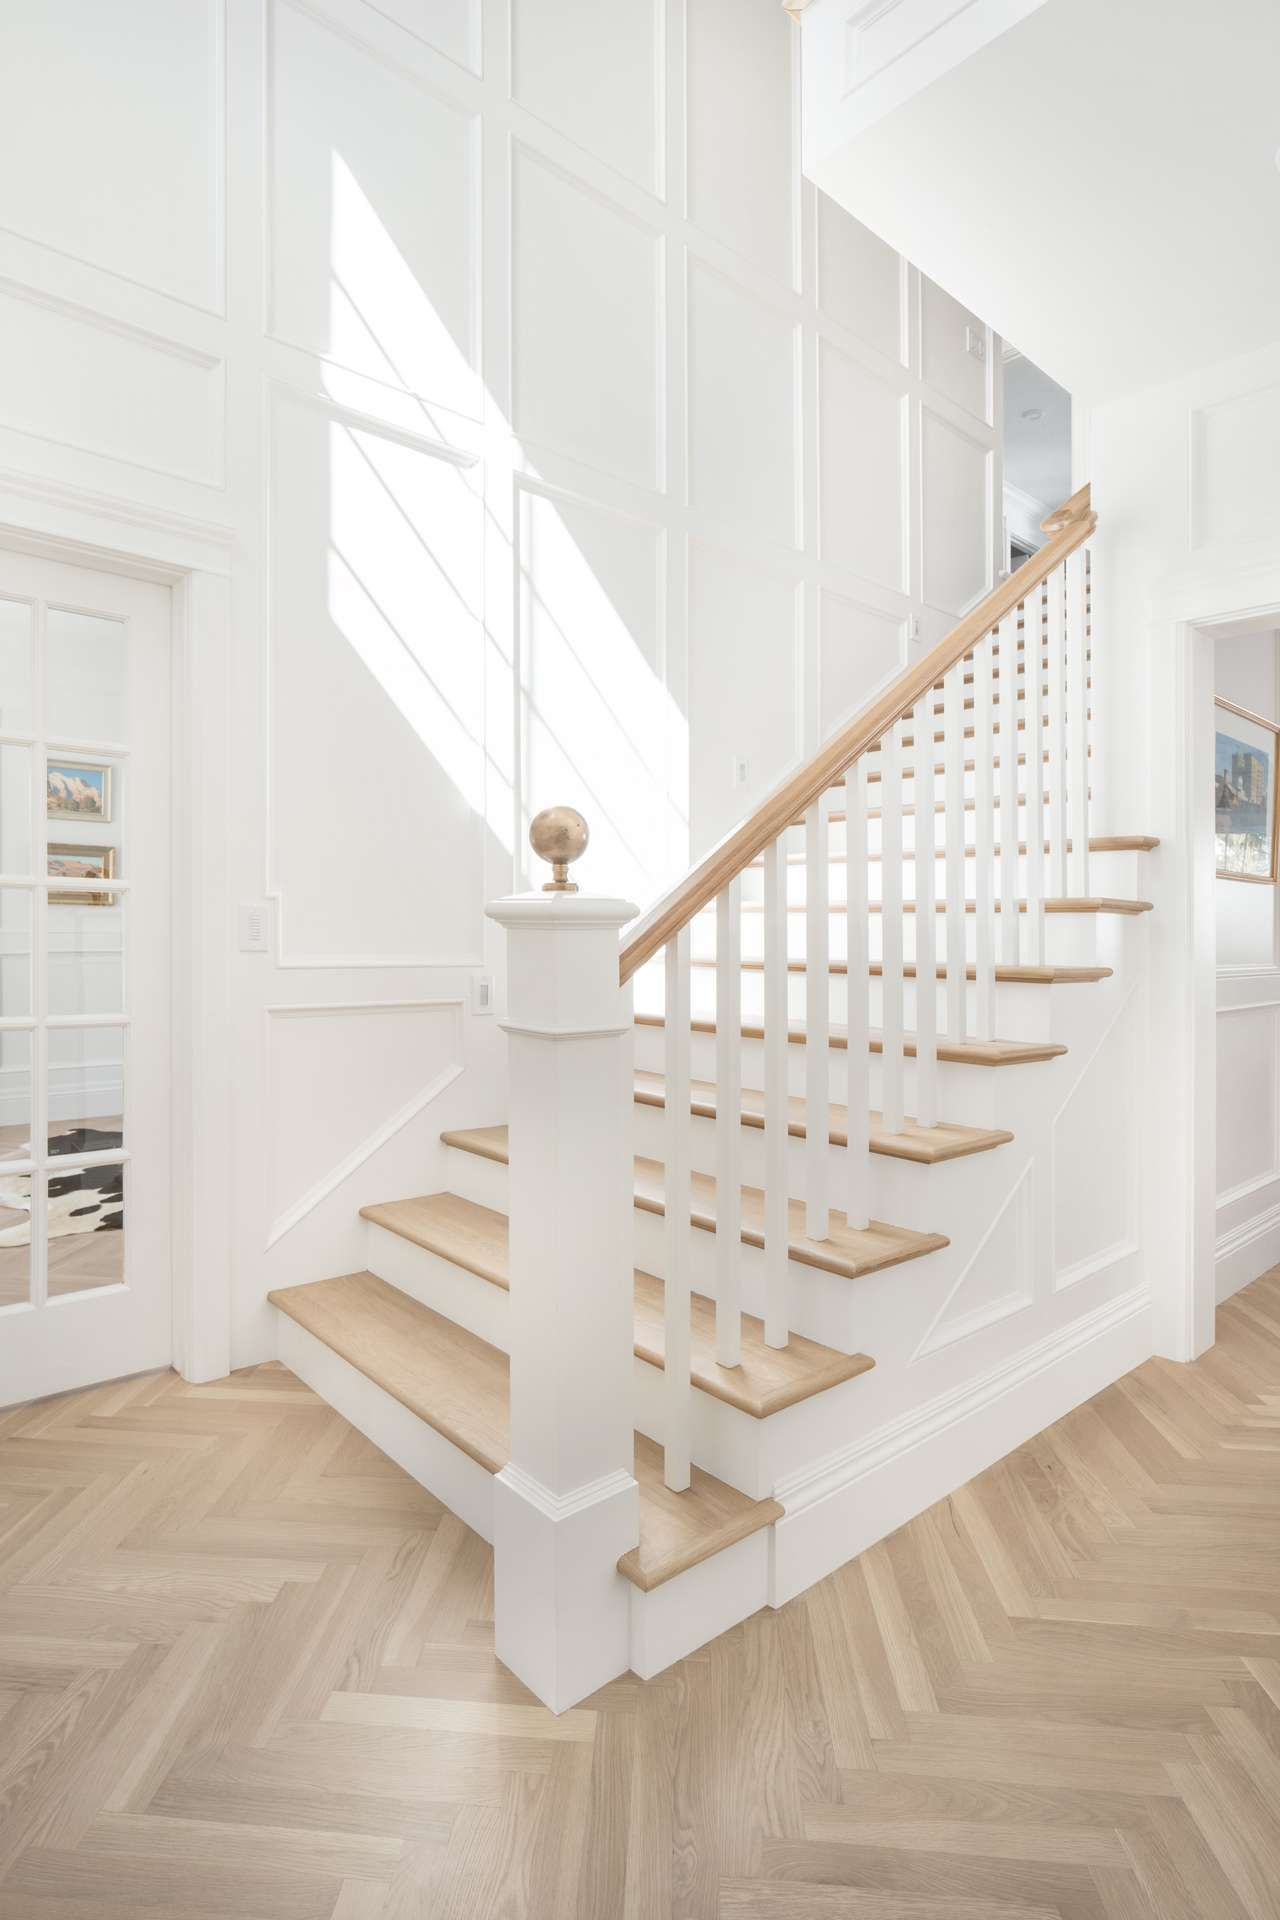 Escalera Hogar Pin De Evelyn Noria En Home Pinterest Hogar Escaleras